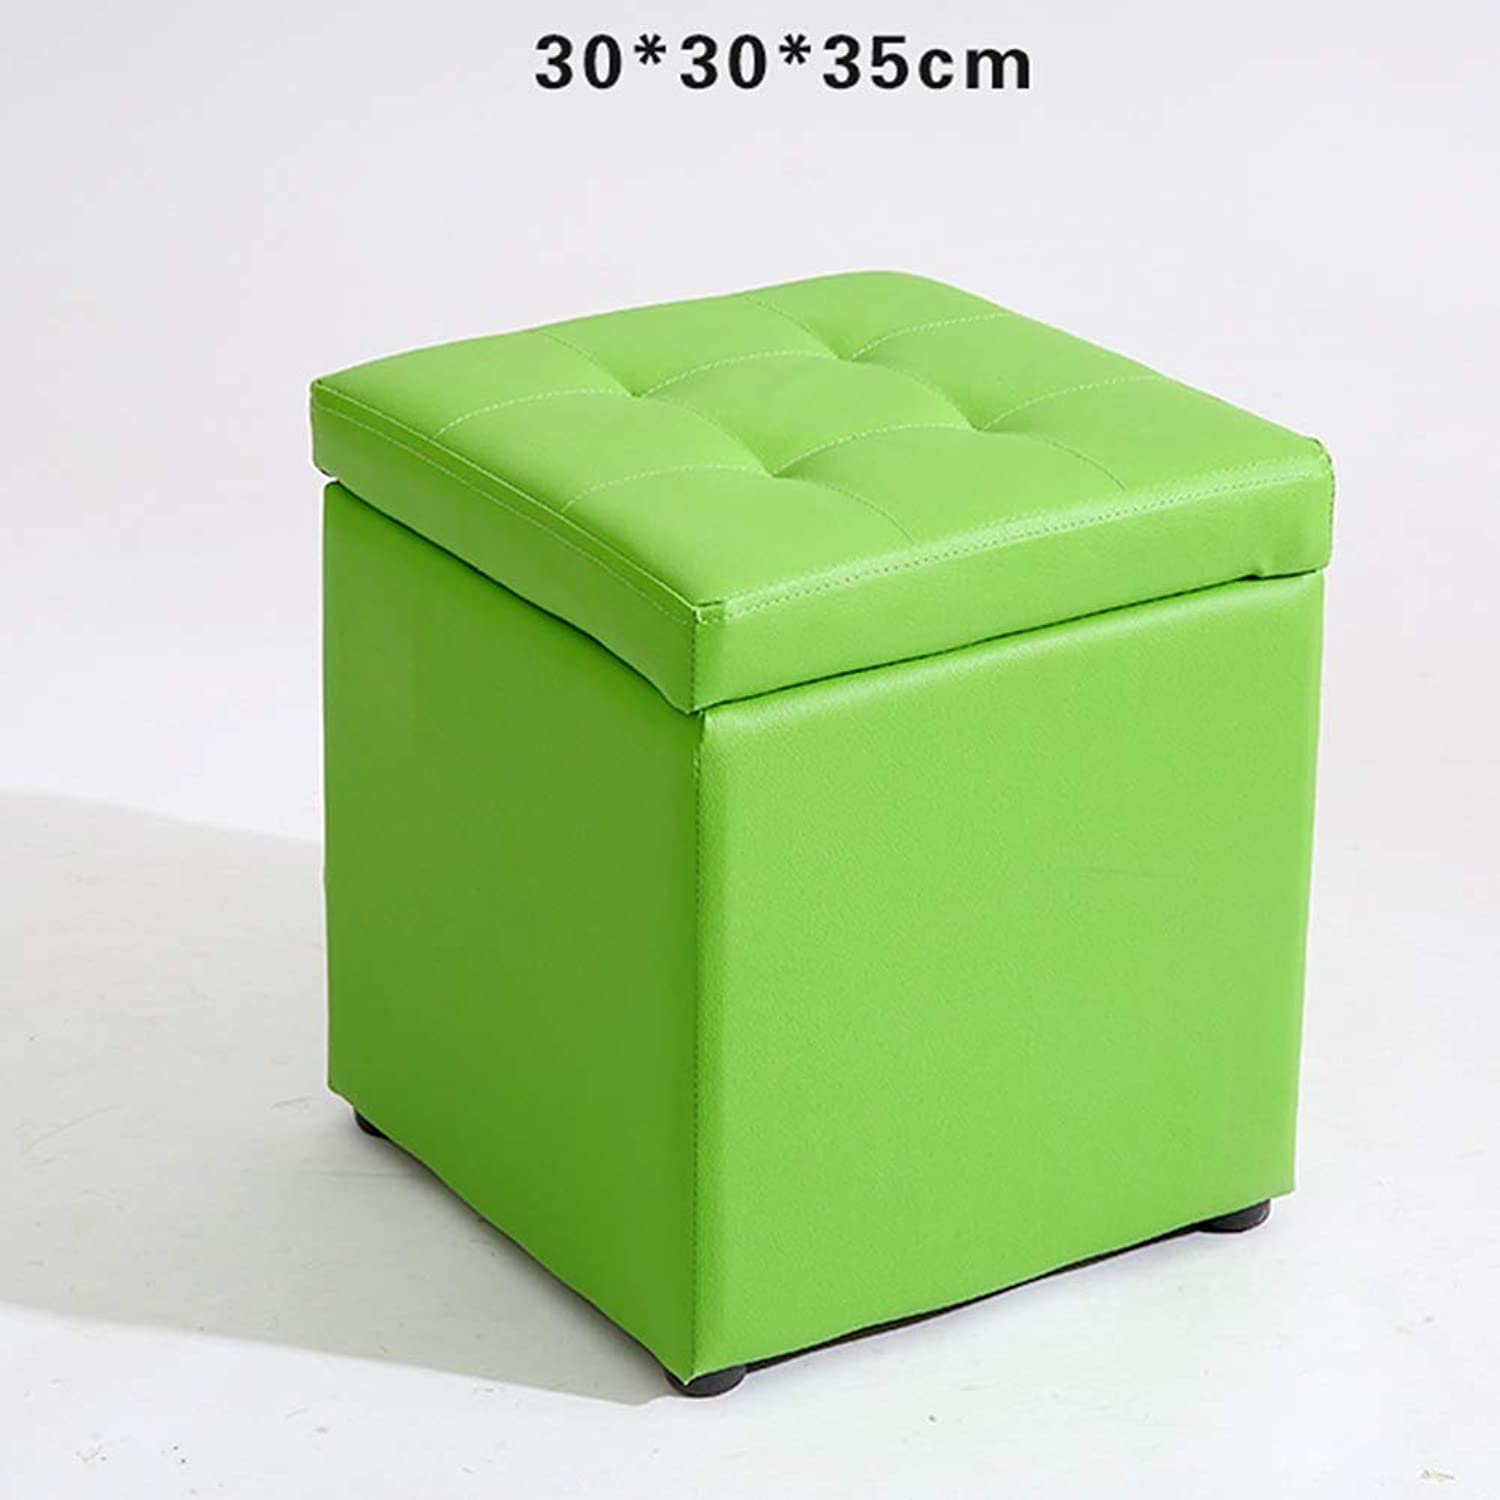 ZHAOYONGLI Stools Footstool Step Stool Living Room Small Stool Storage Stool Change shoes Non-Slip Storage Bench Low Stool Creative Solid Durable Long Lasting (color   Green)